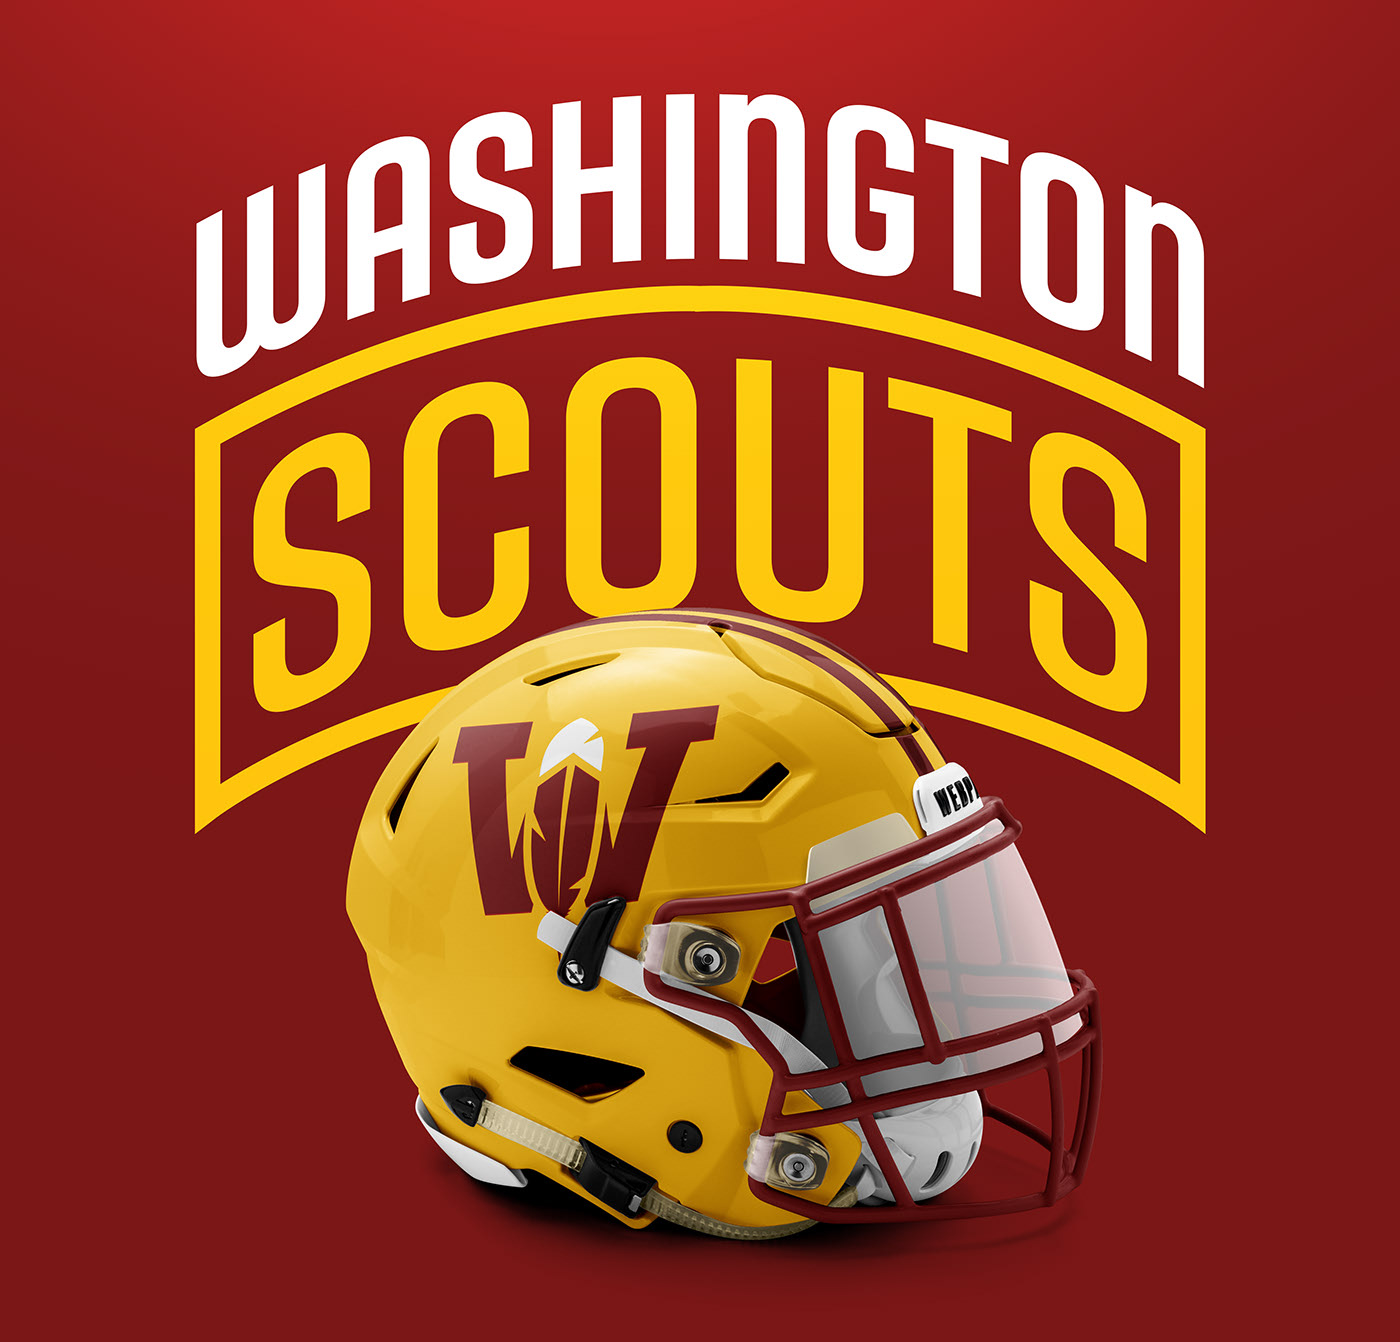 Graphic Designers Suggest Washington Nfl Team Logo Changes Dcist